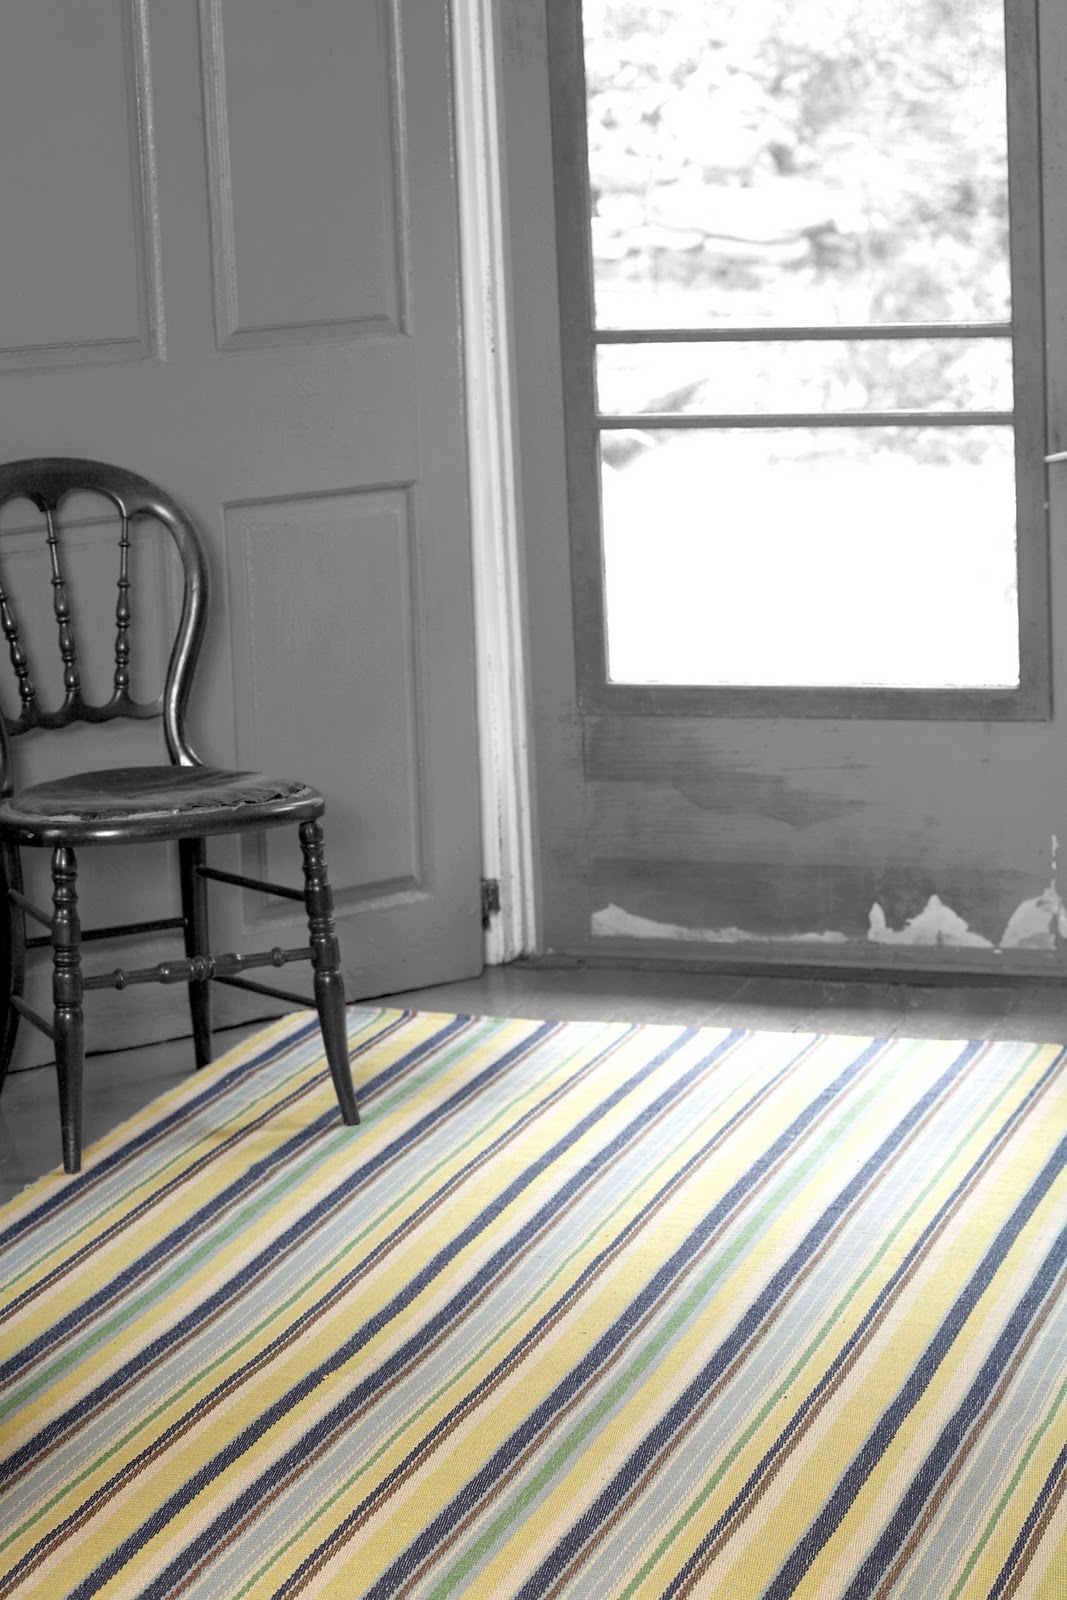 Awesome Stripped Dash And Albert Rugs On Wooden Floor Matched With White Door For Interior Design Ideas